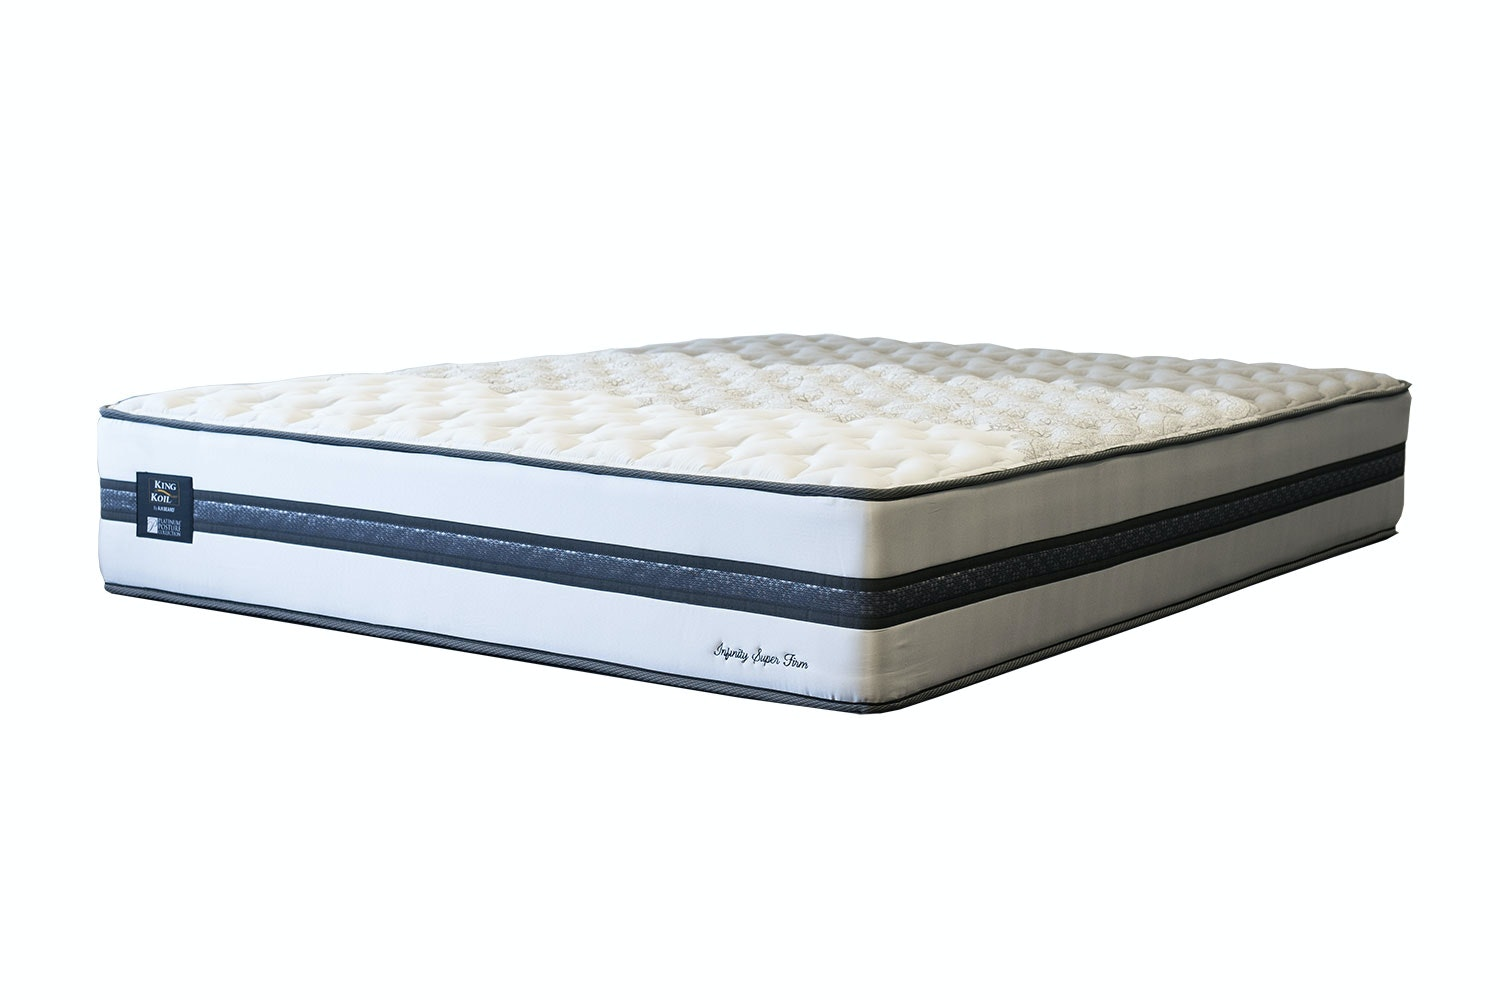 Infinity Super Firm Double Mattress by King Koil